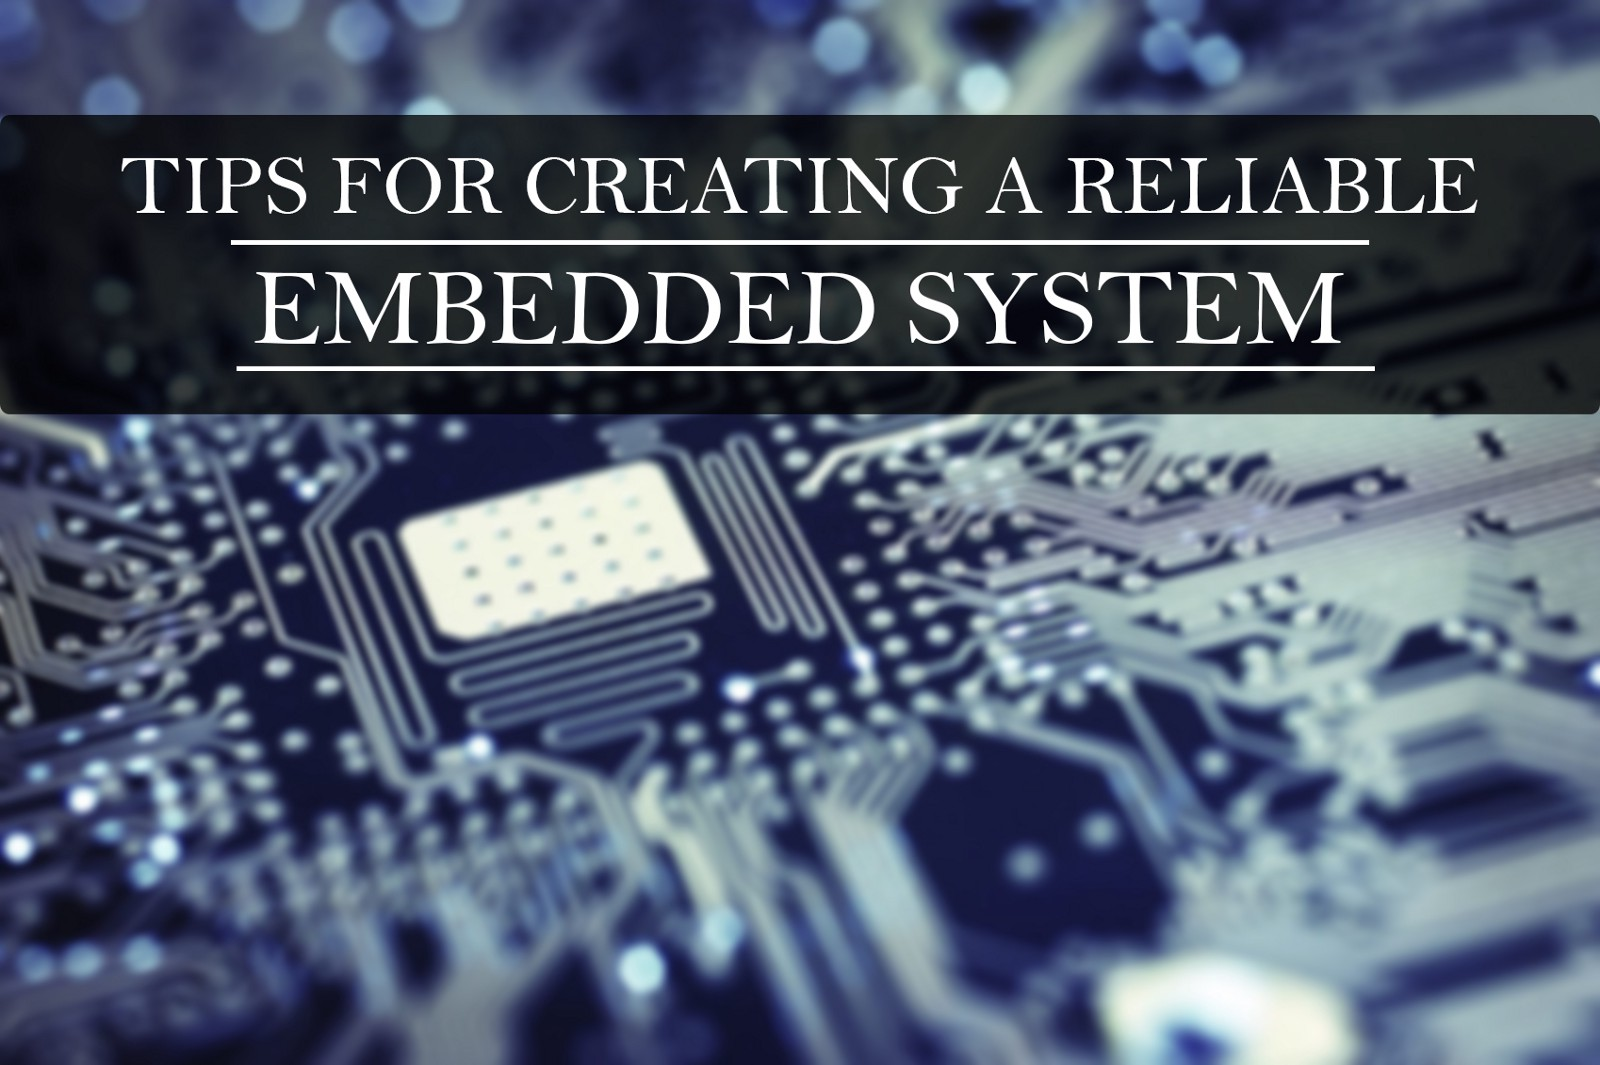 Tips For Creating A Reliable Embedded System